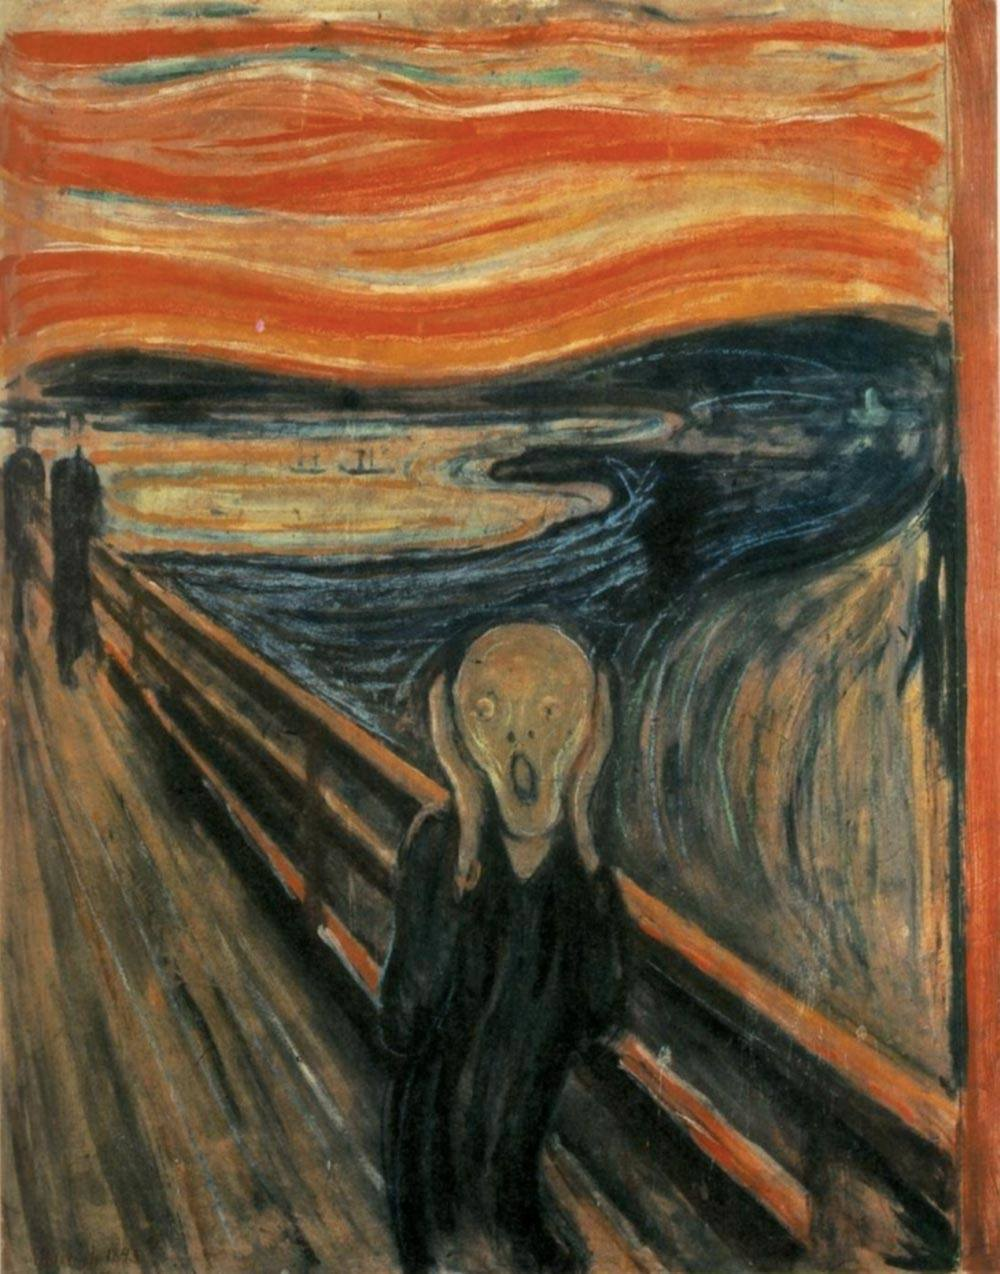 """The Scream"" by Edvard Munch - WebMuseum at ibiblioPage: http://www.ibiblio.org/wm/paint/auth/munch/Image URL: http://www.ibiblio.org/wm/paint/auth/munch/munch.scream.jpg. Licensed under Public Domain via Wikimedia Commons - http://commons.wikimedia.org/wiki/File:The_Scream.jpg#/media/File:The_Scream.jpg"